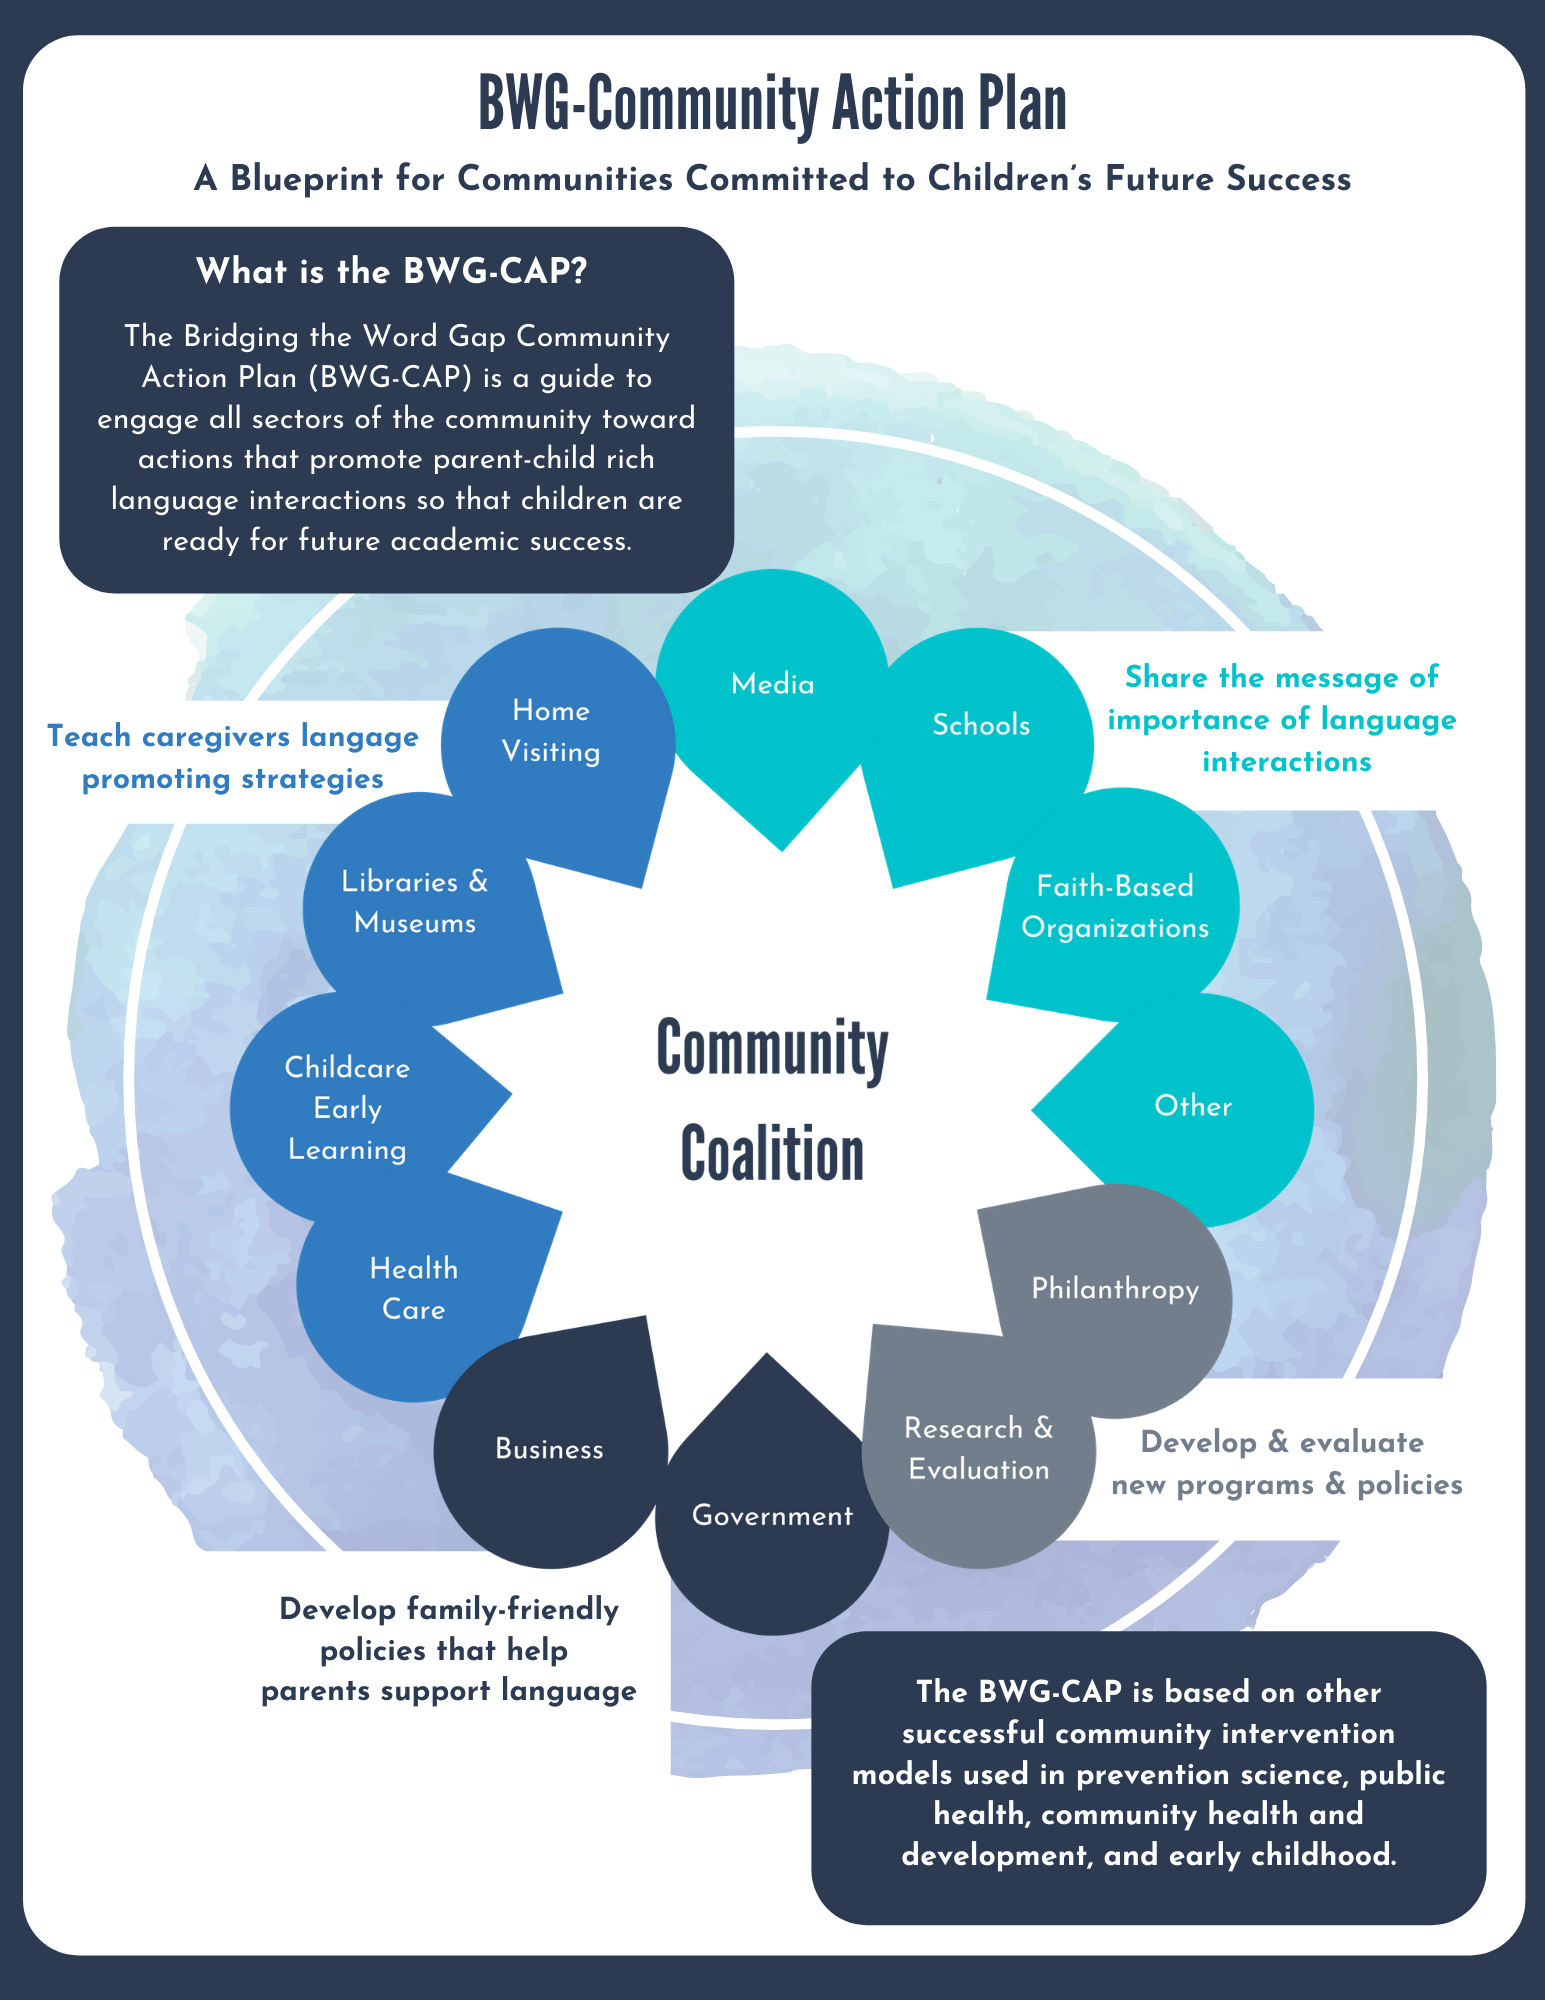 This is the 3rd page of the bridging the word gap community action plan